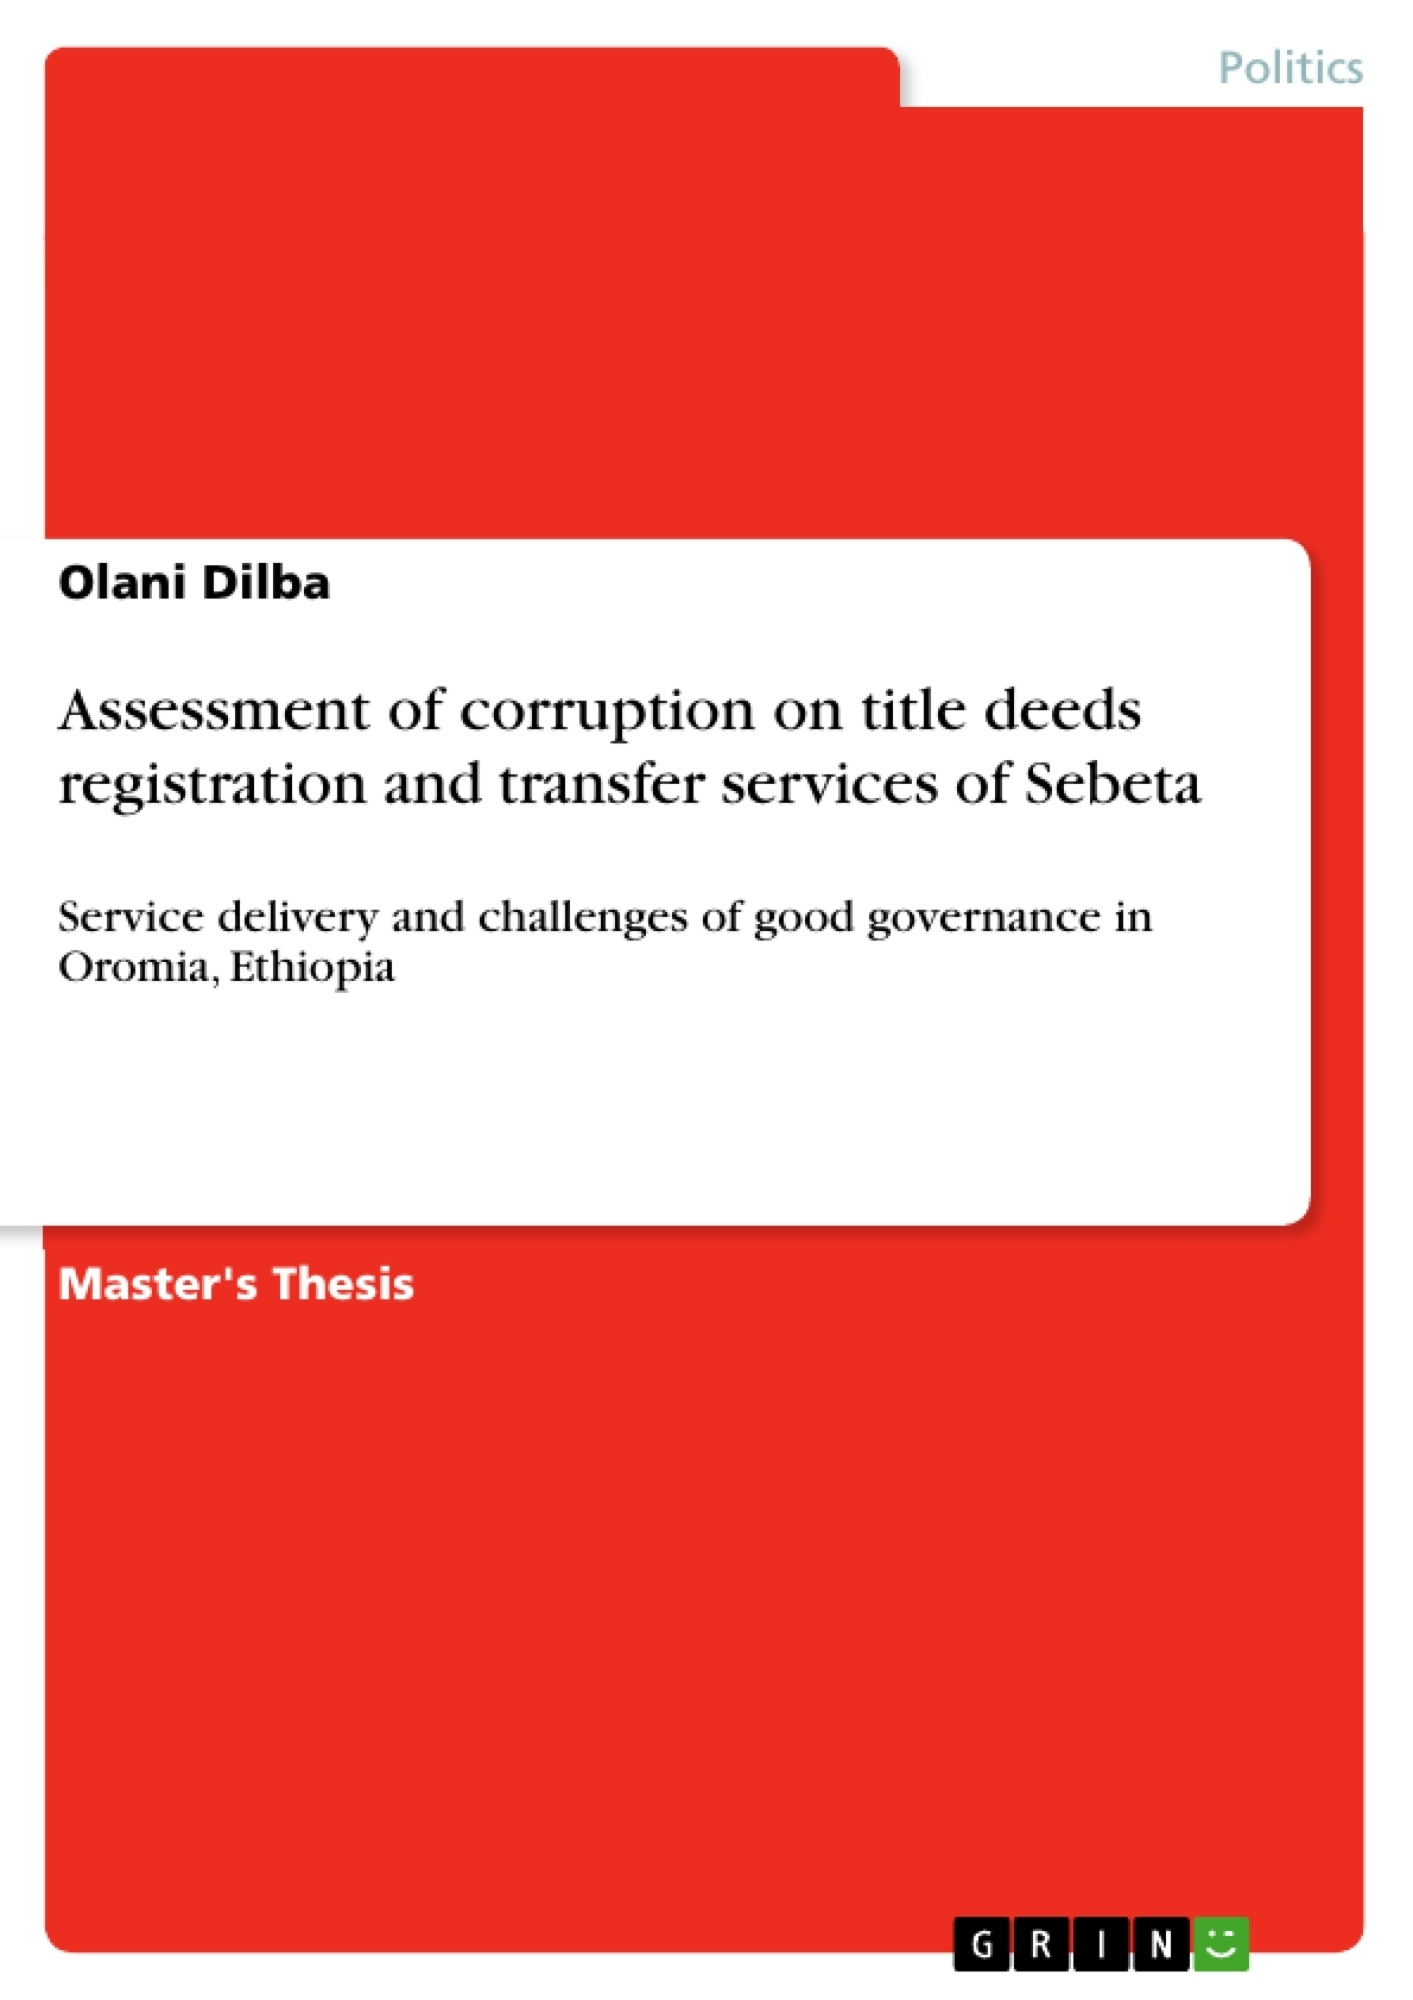 Title: Assessment of corruption on title deeds registration and transfer services of Sebeta